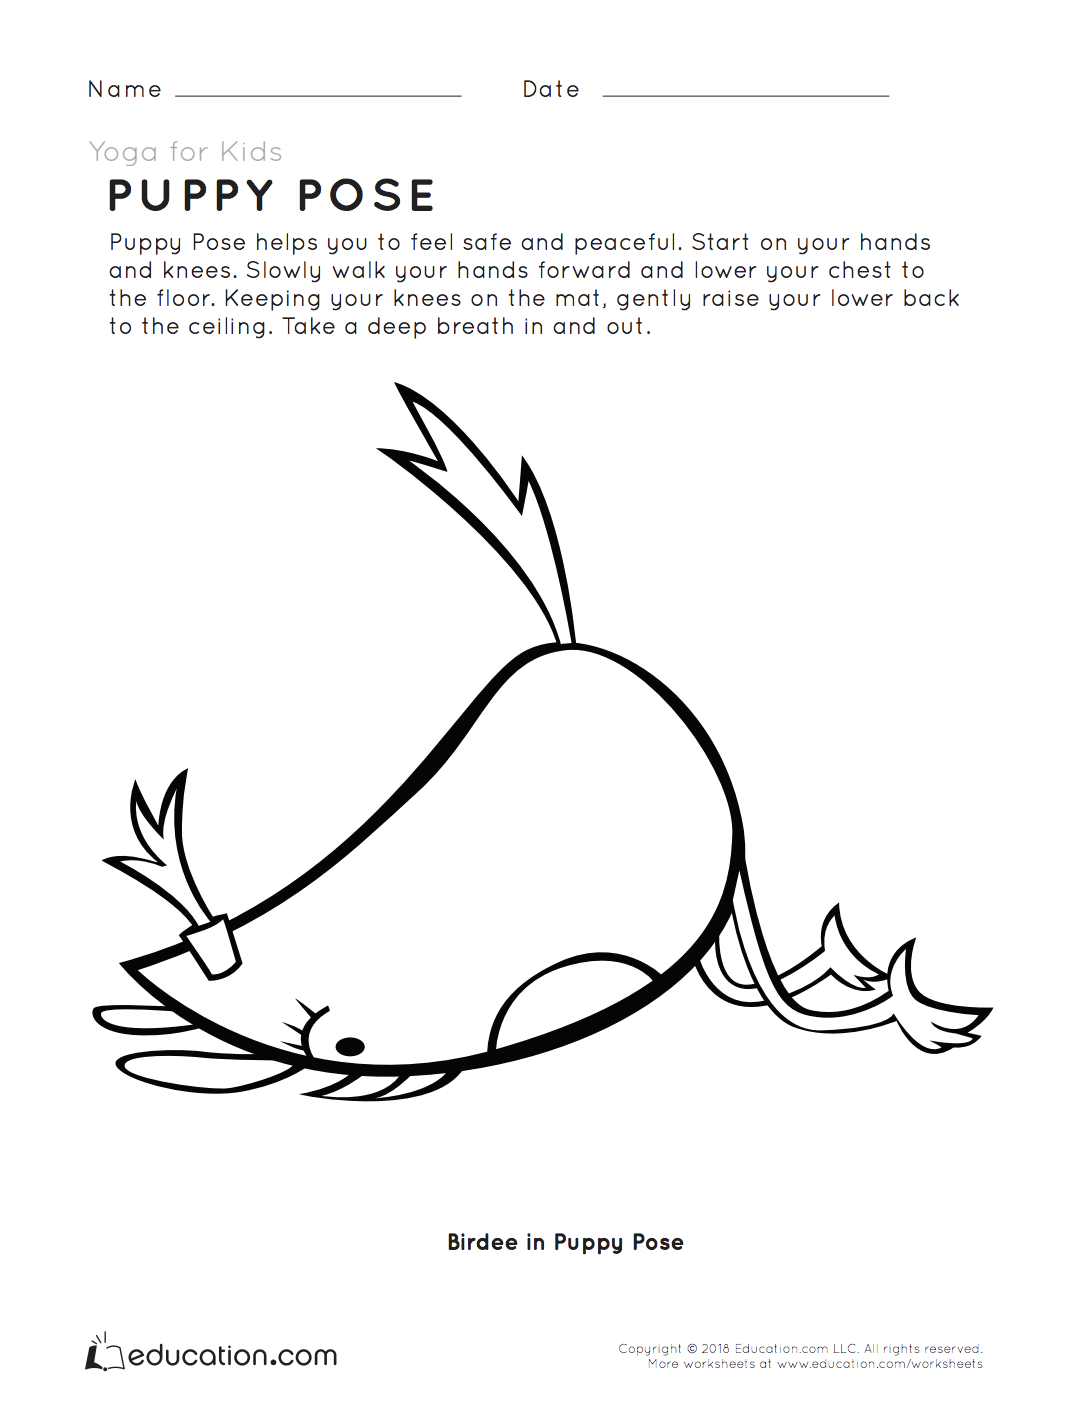 Yoga For Kids Puppy Pose